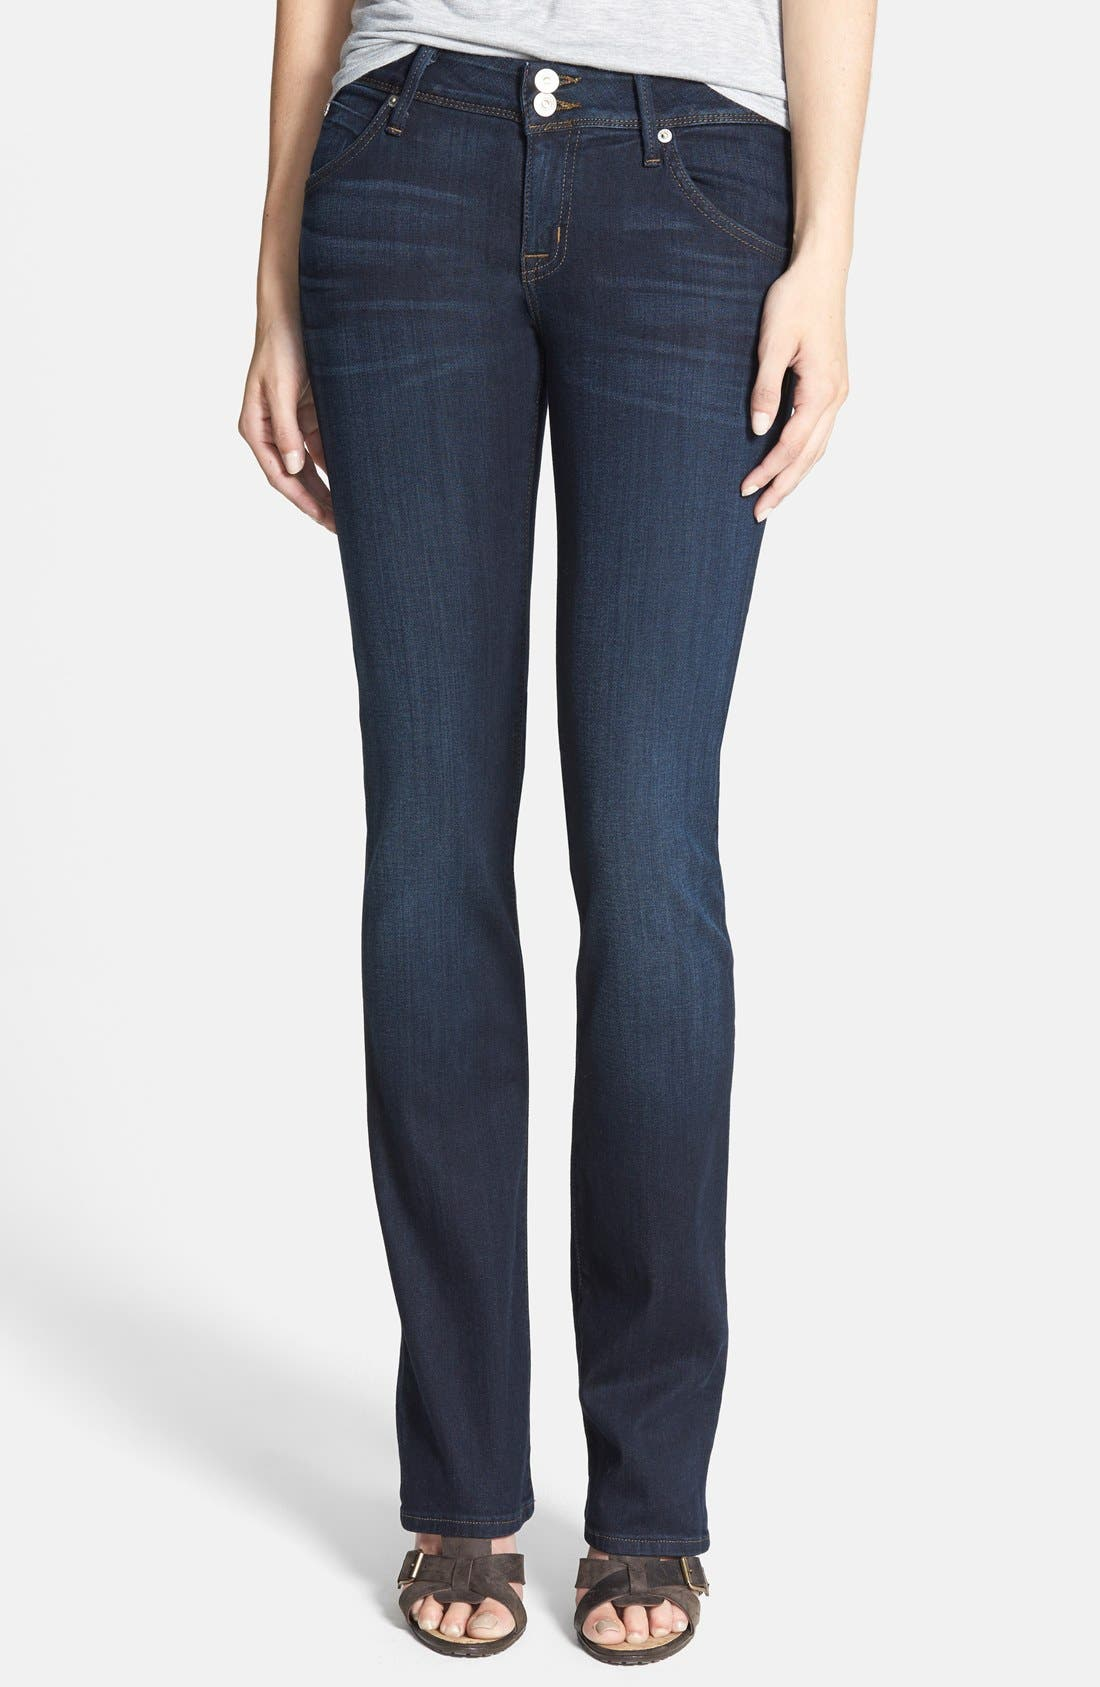 Main Image - Hudson Jeans 'Beth' Baby Bootcut Jeans (London Calling)